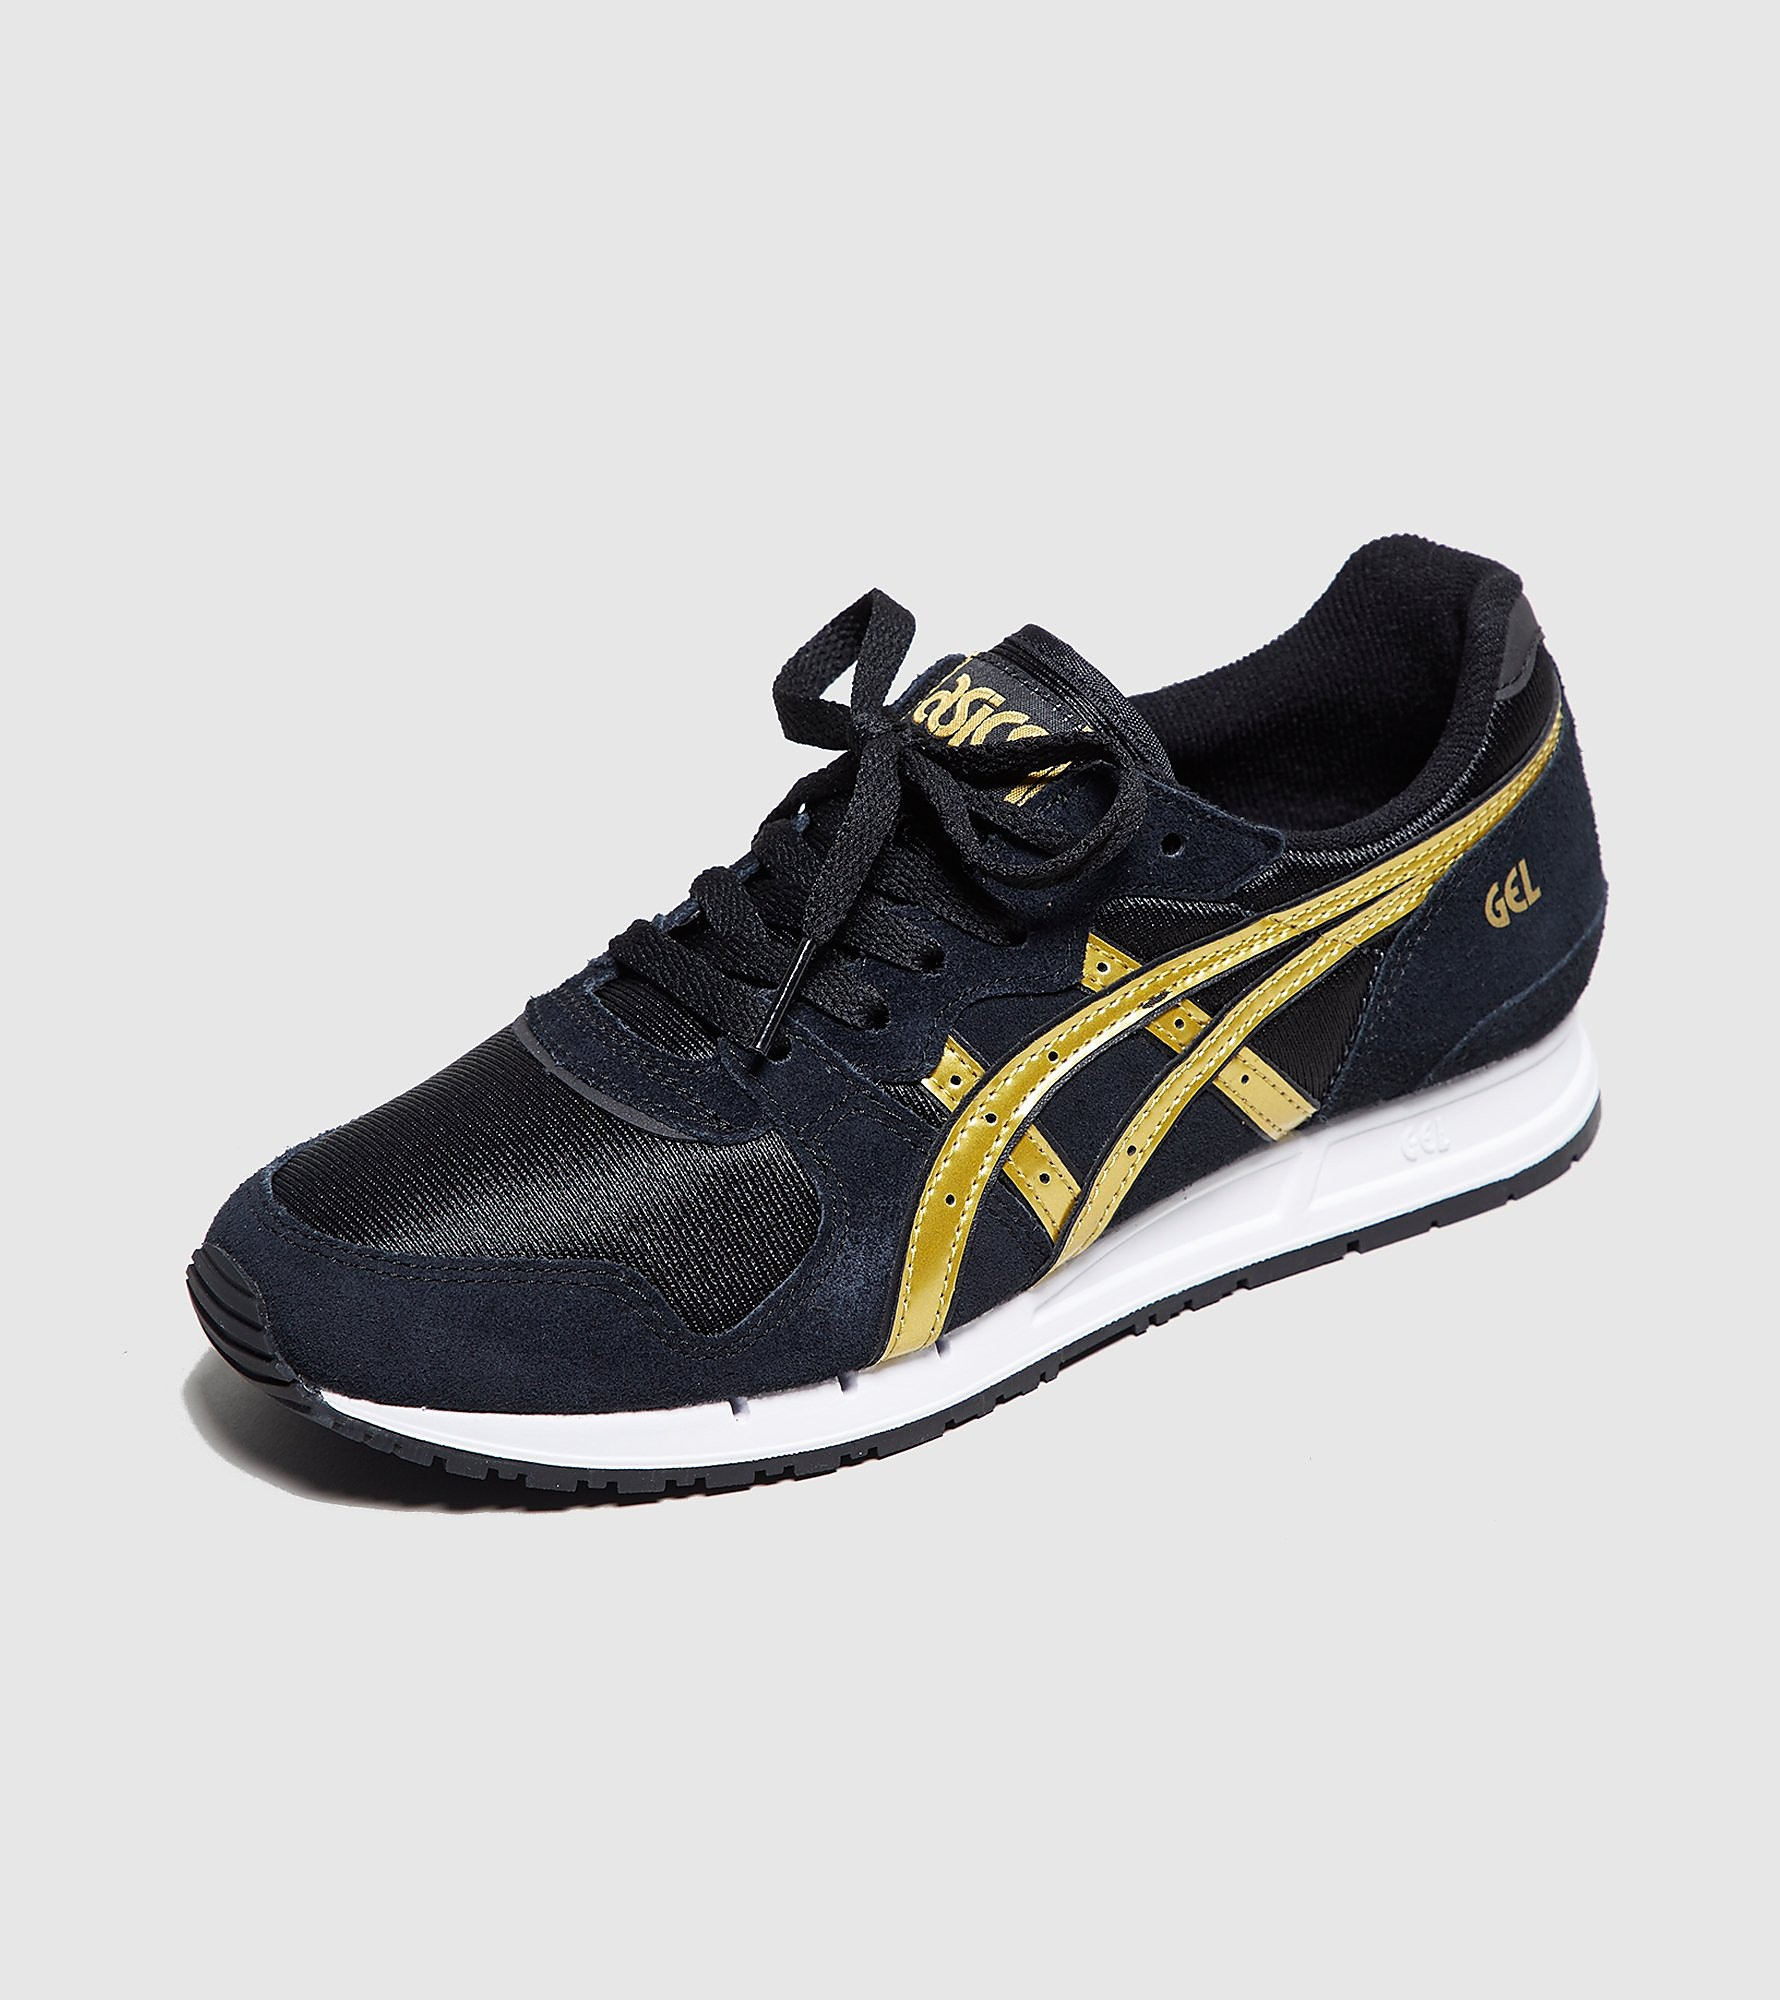 ASICS Movimentum Women's